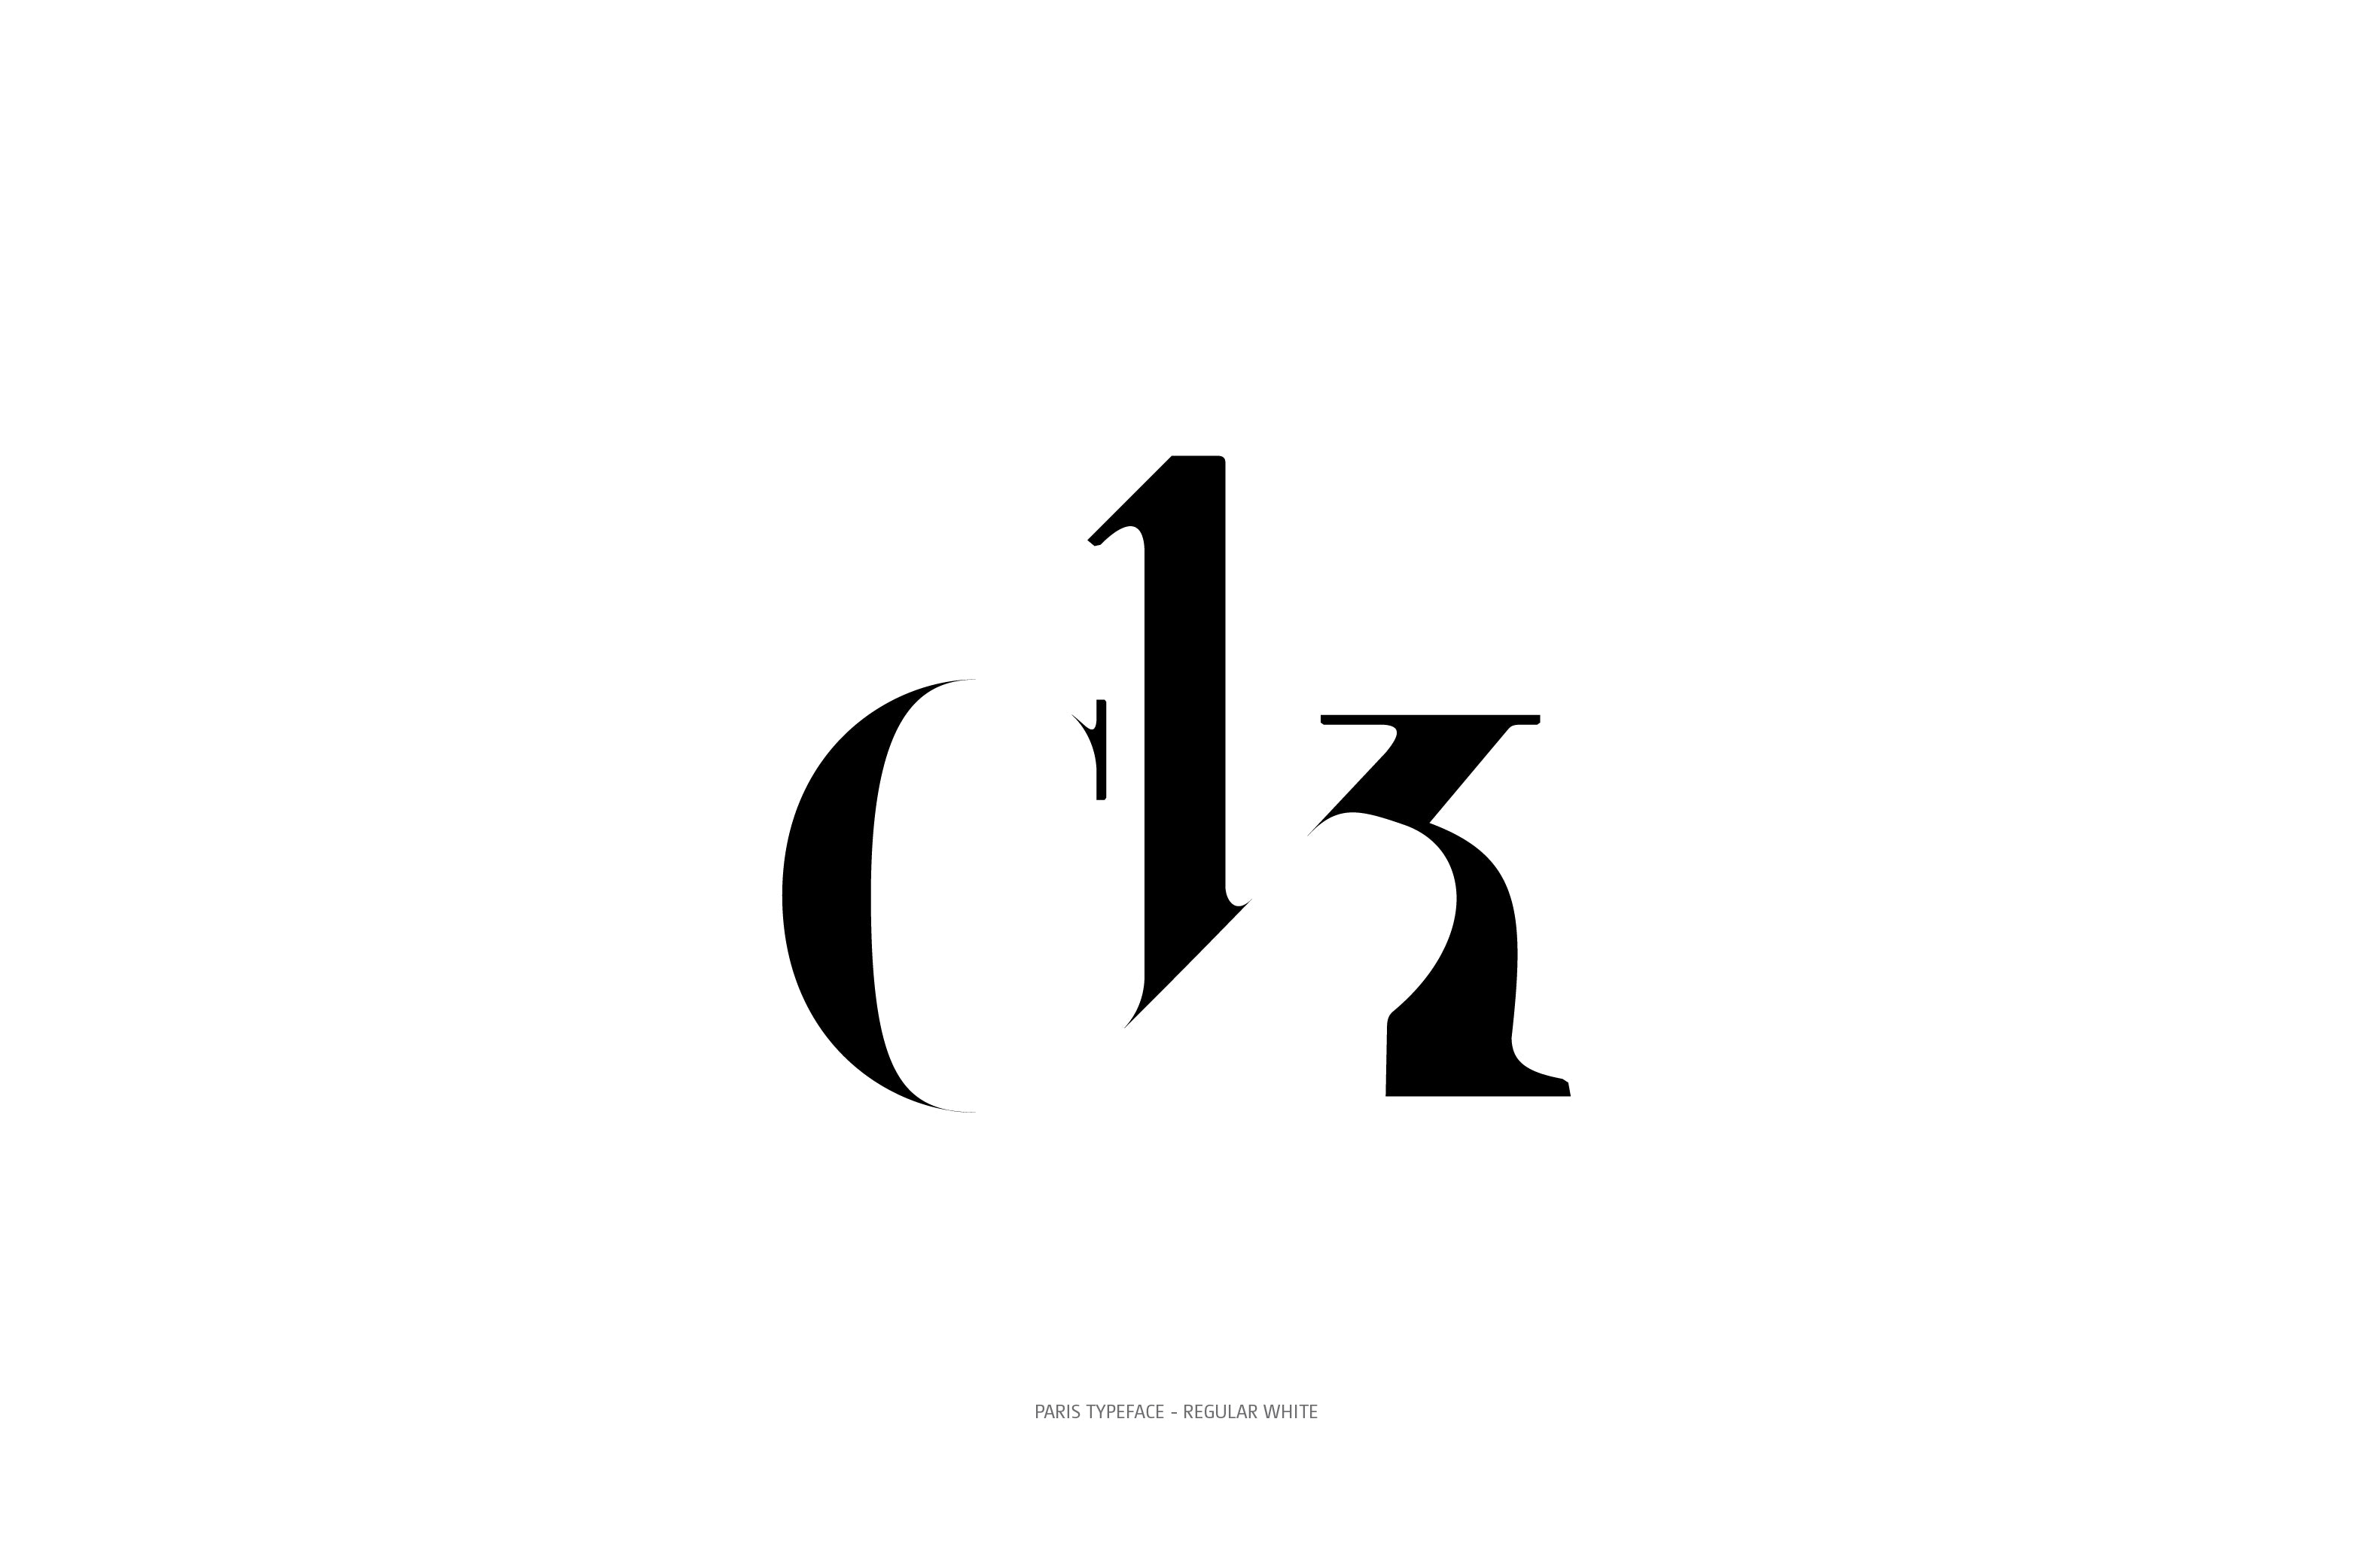 Paris Typeface Regular White ck ligature